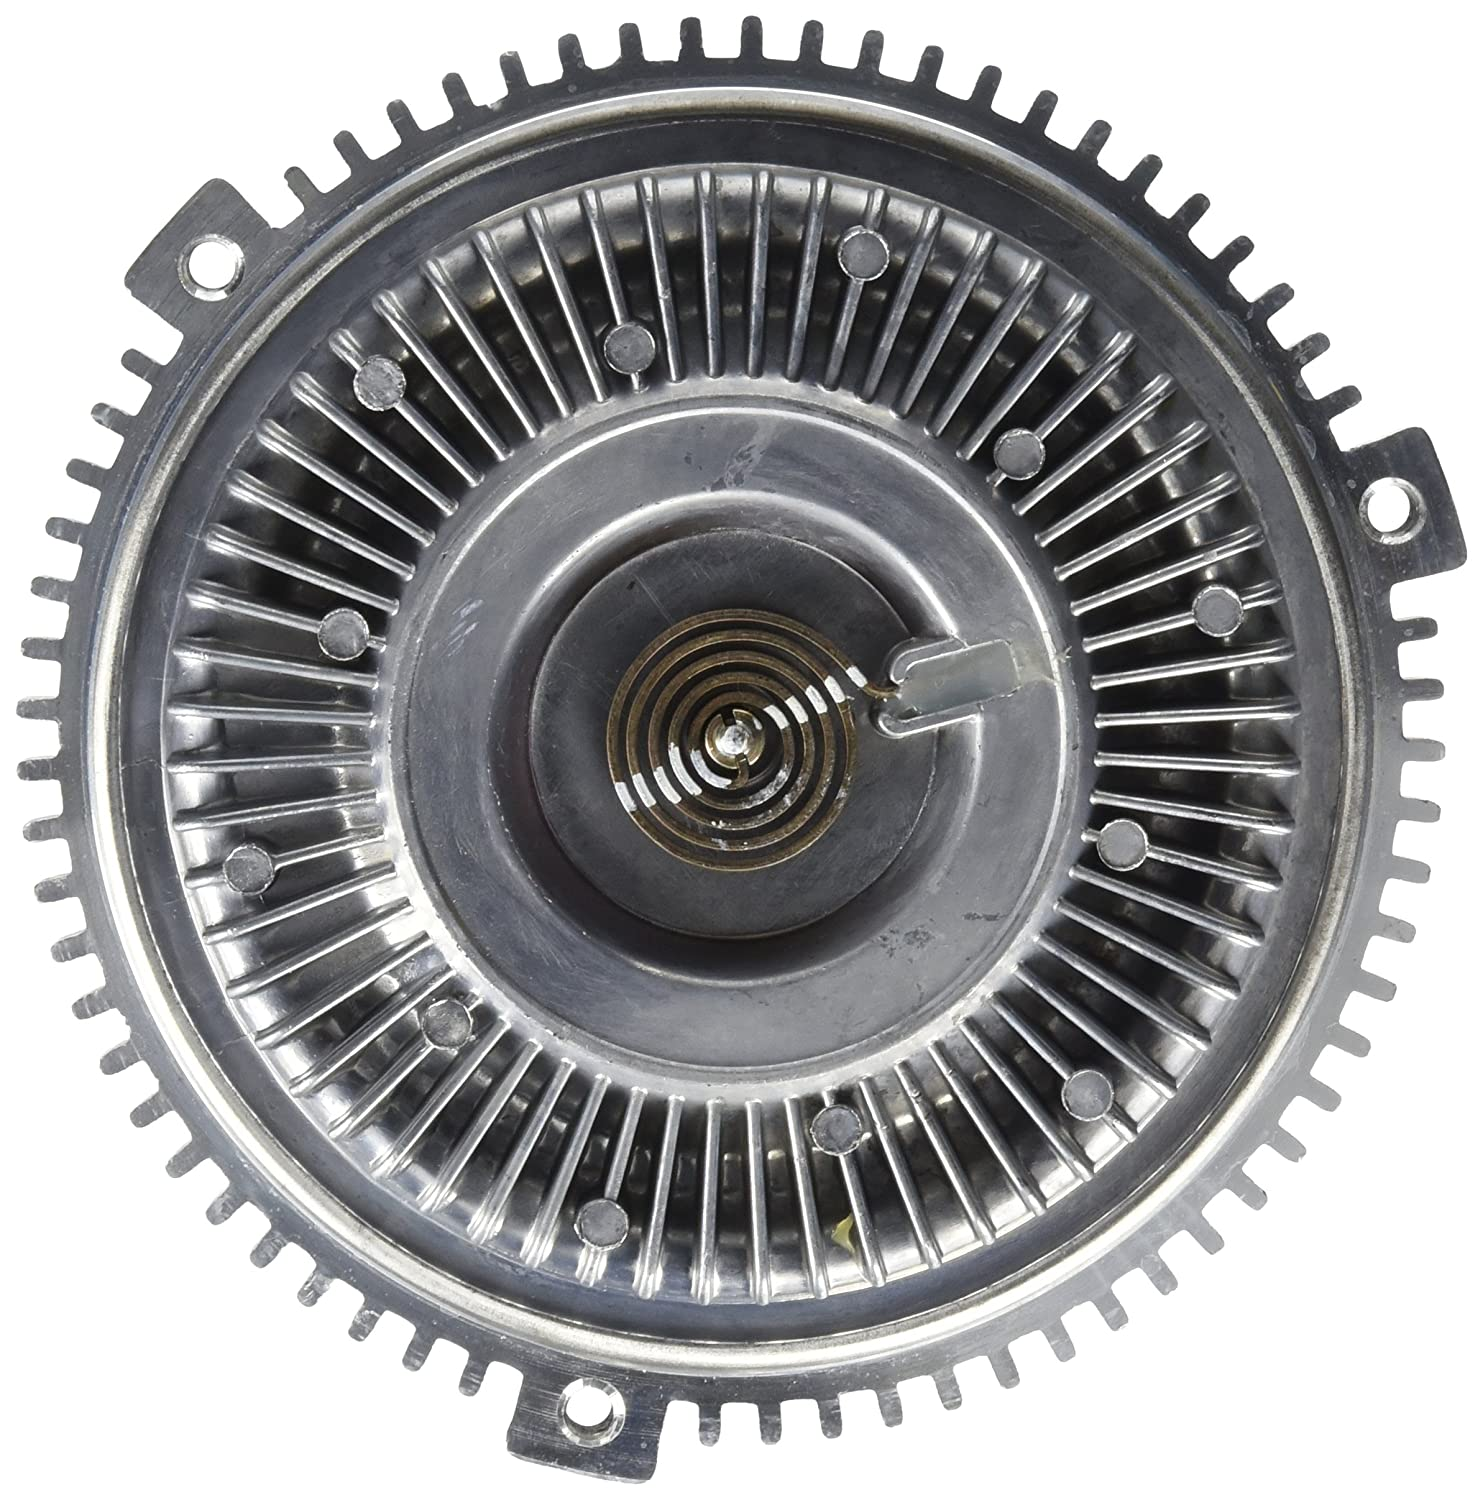 Beck Arnley 130-0192 Engine Cooling Fan Clutch